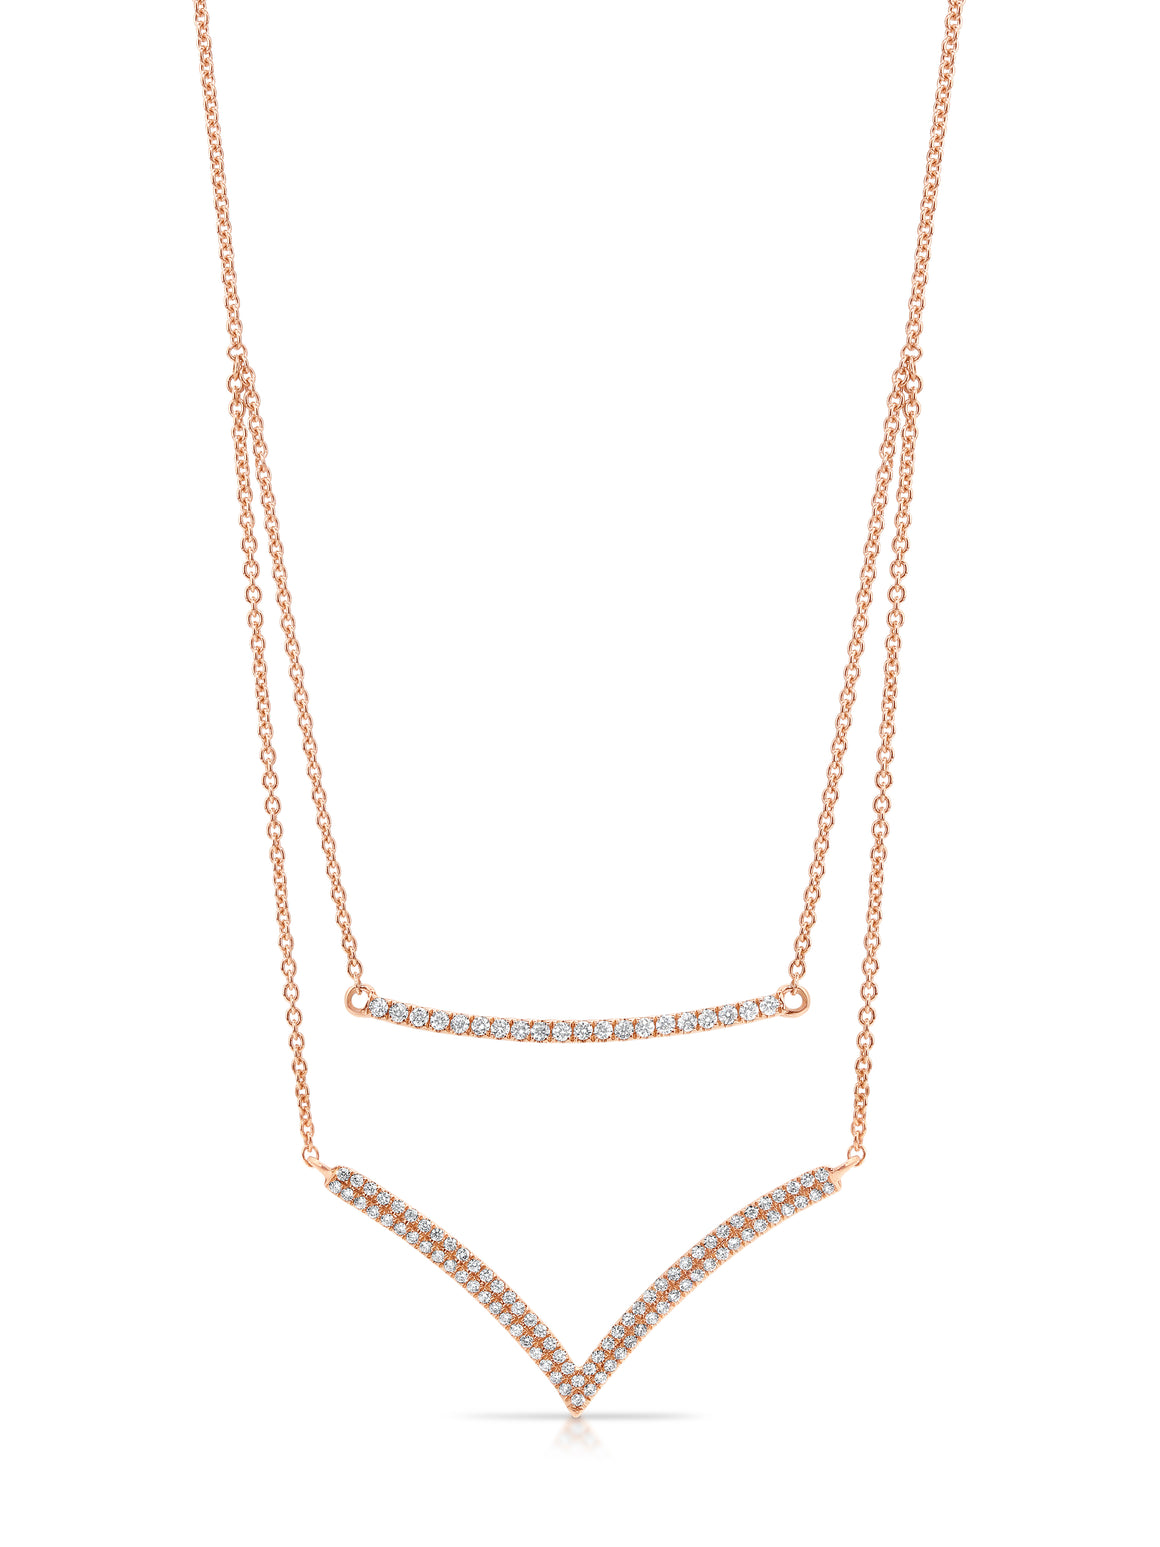 "18ct Gold and Diamond ""Havana"" Necklace - Gemma Stone Jewellery"